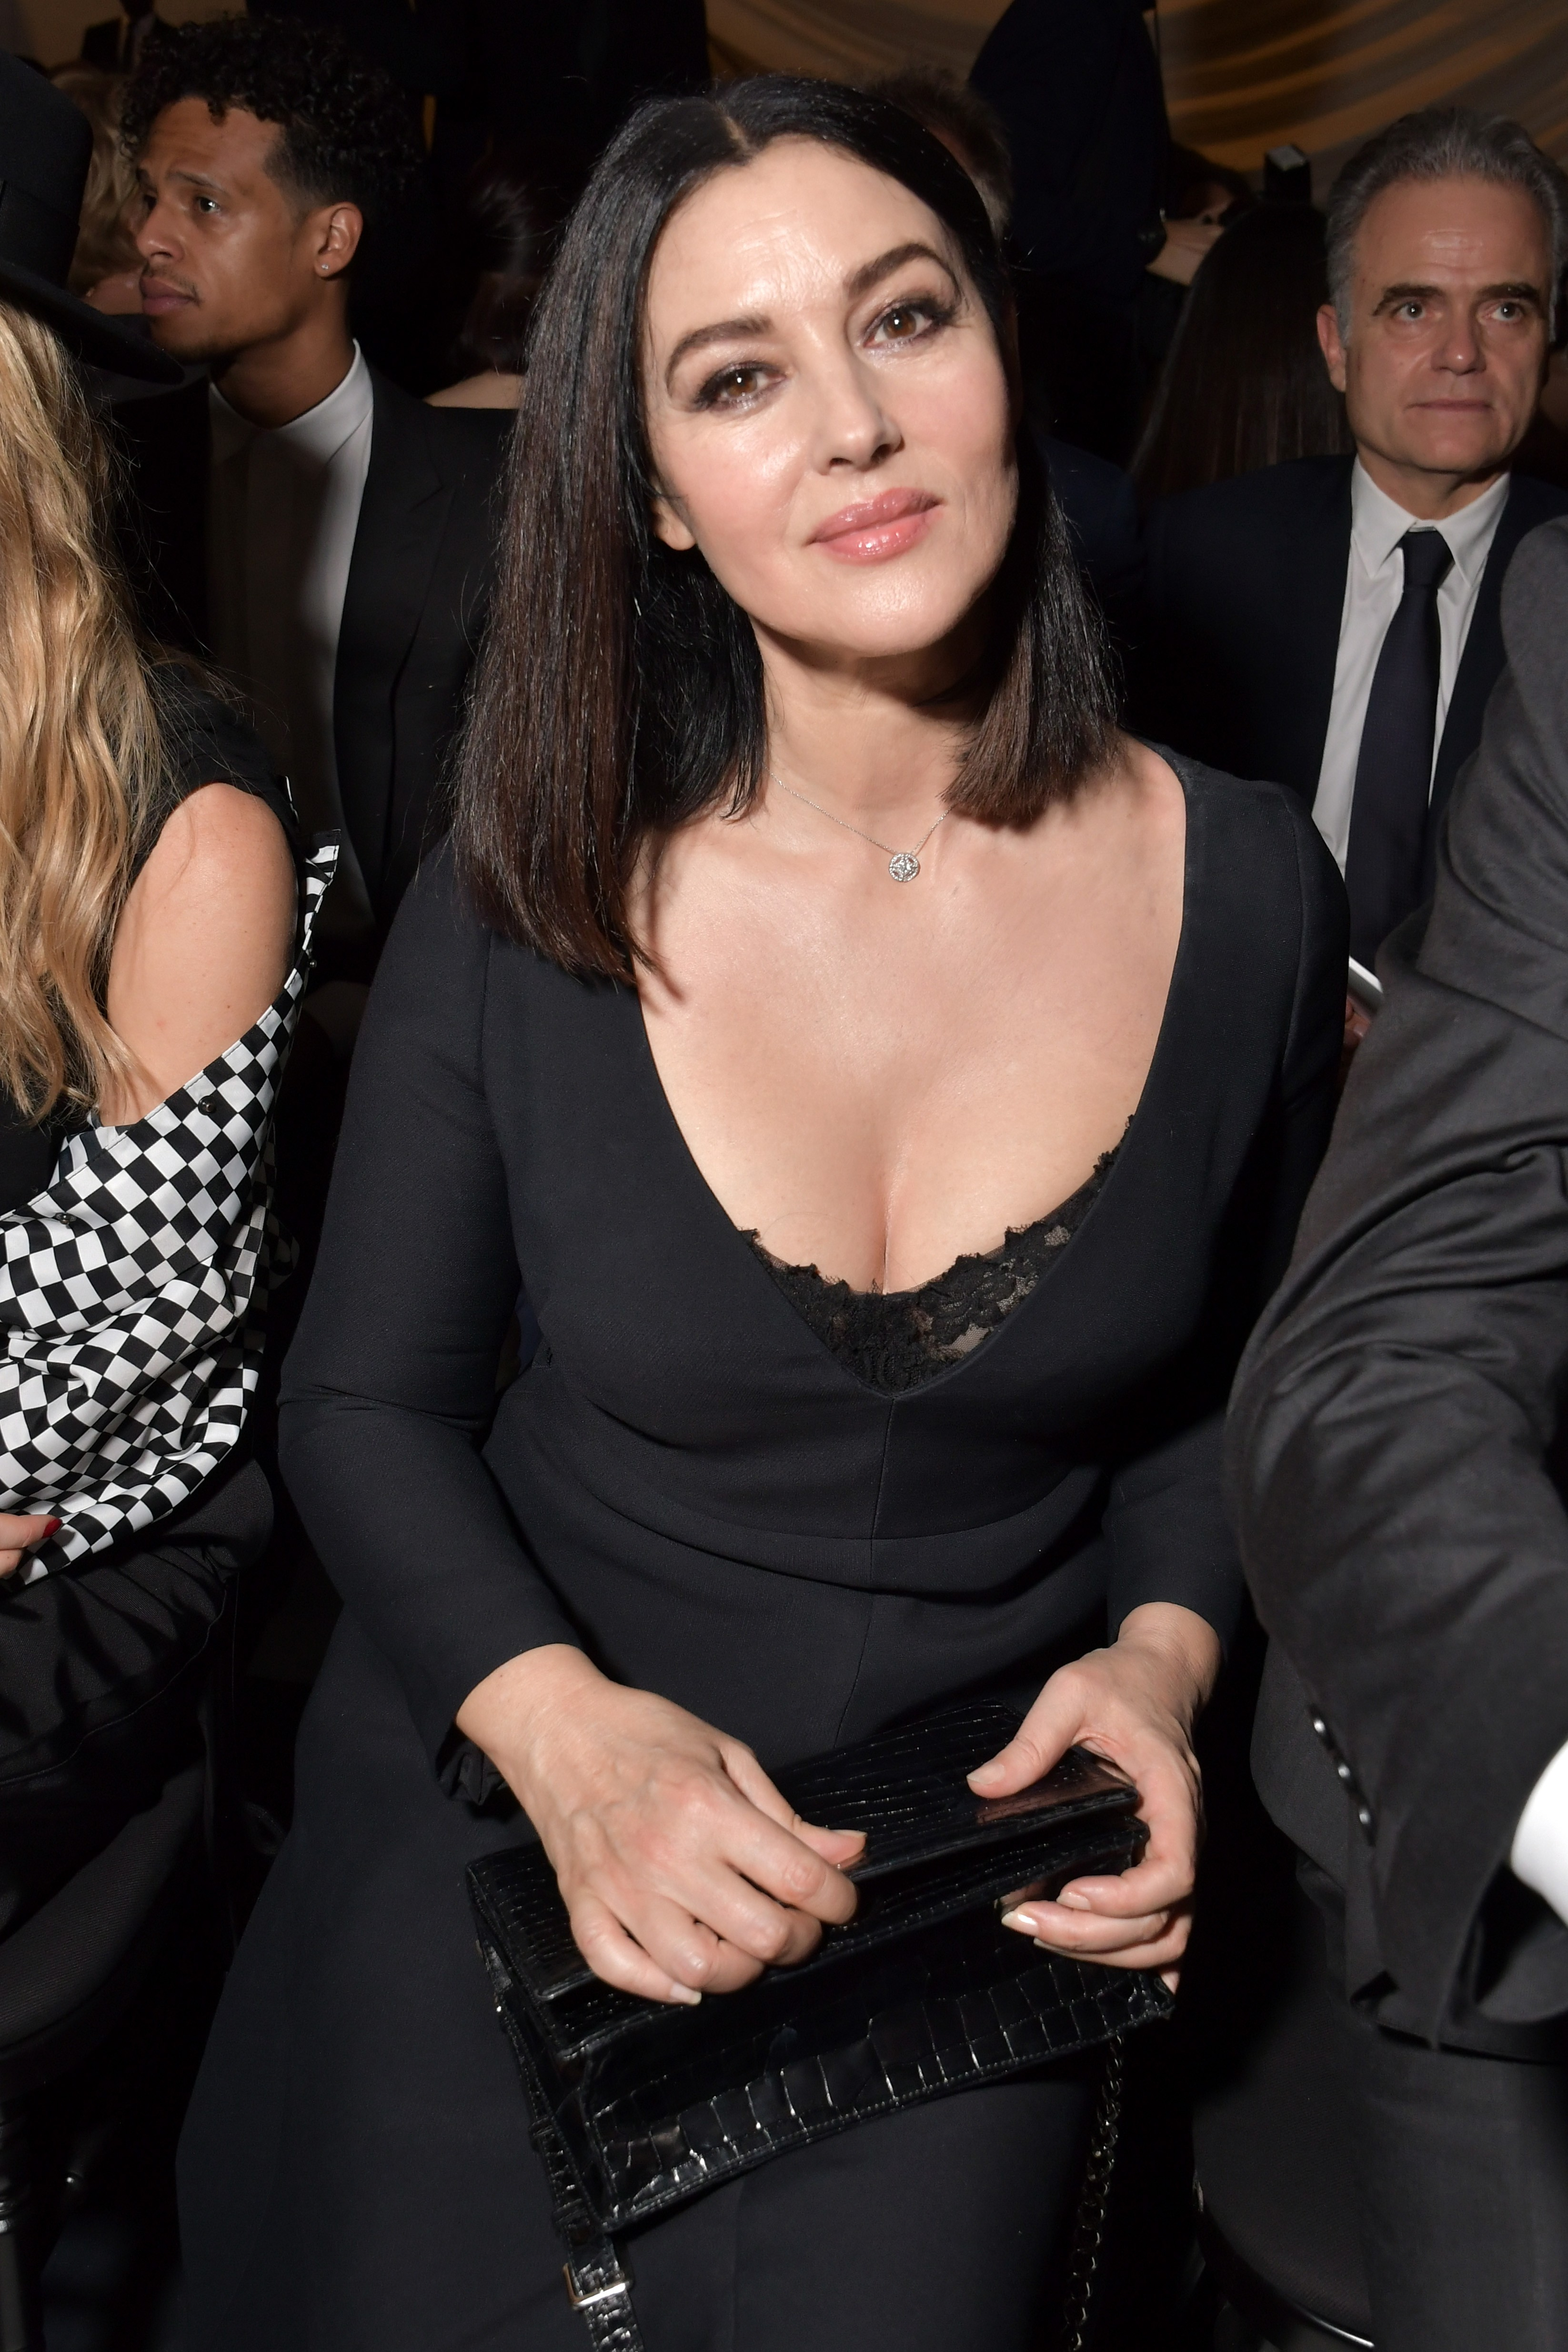 Monica Bellucci Photos At Christian Dior Show in Paris - Sexy Actress Pictures | Hot Actress Pictures - ActressSnaps.com